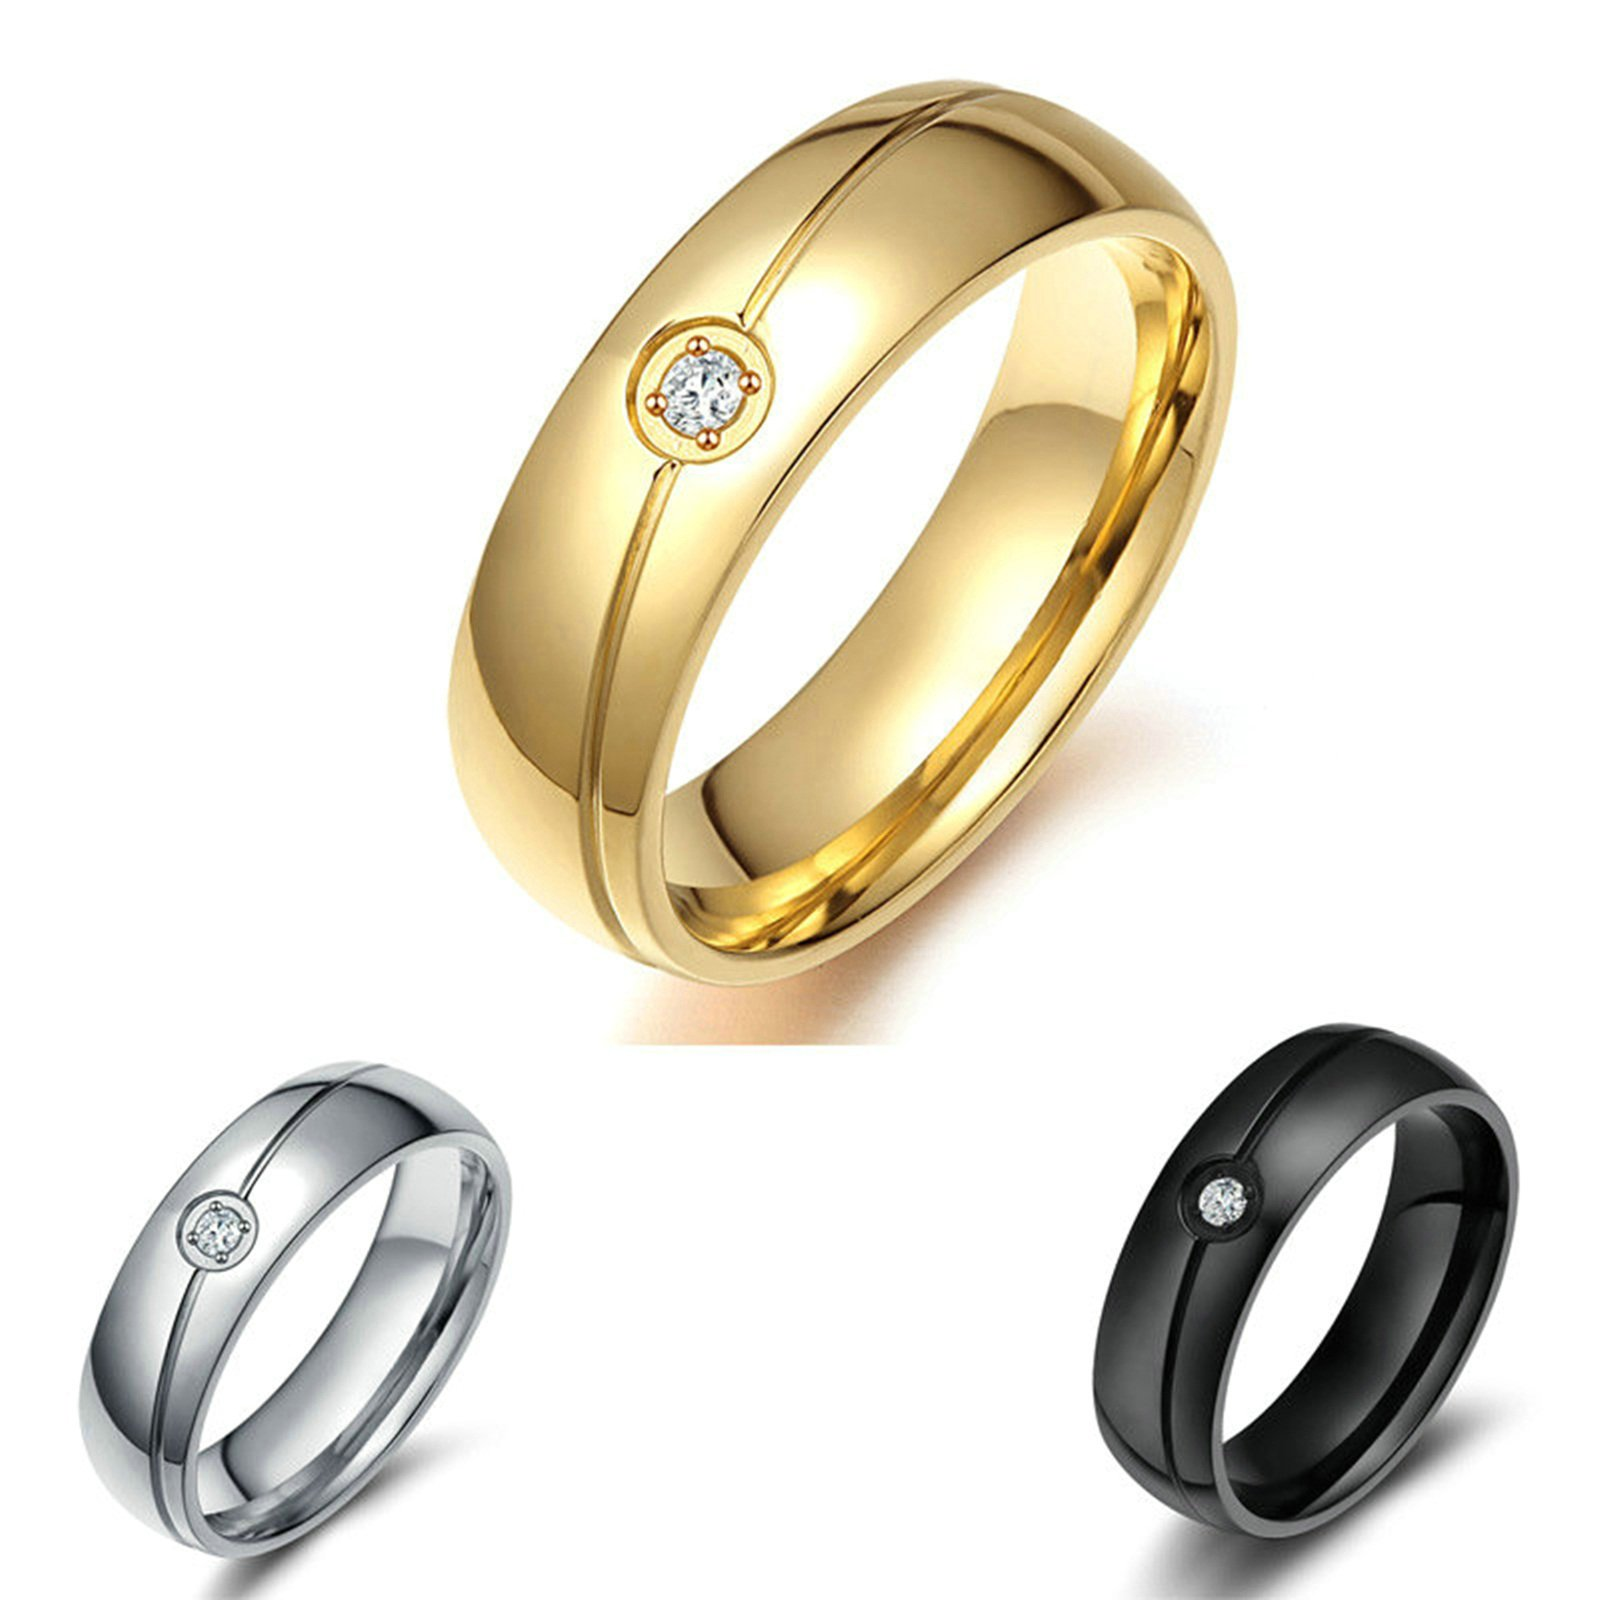 Onefeart Women Titanium Steel Ring Mens Wedding Band,White Crystal 6MM Size J 1/2-Z 1/2 Silver/Gold/Black